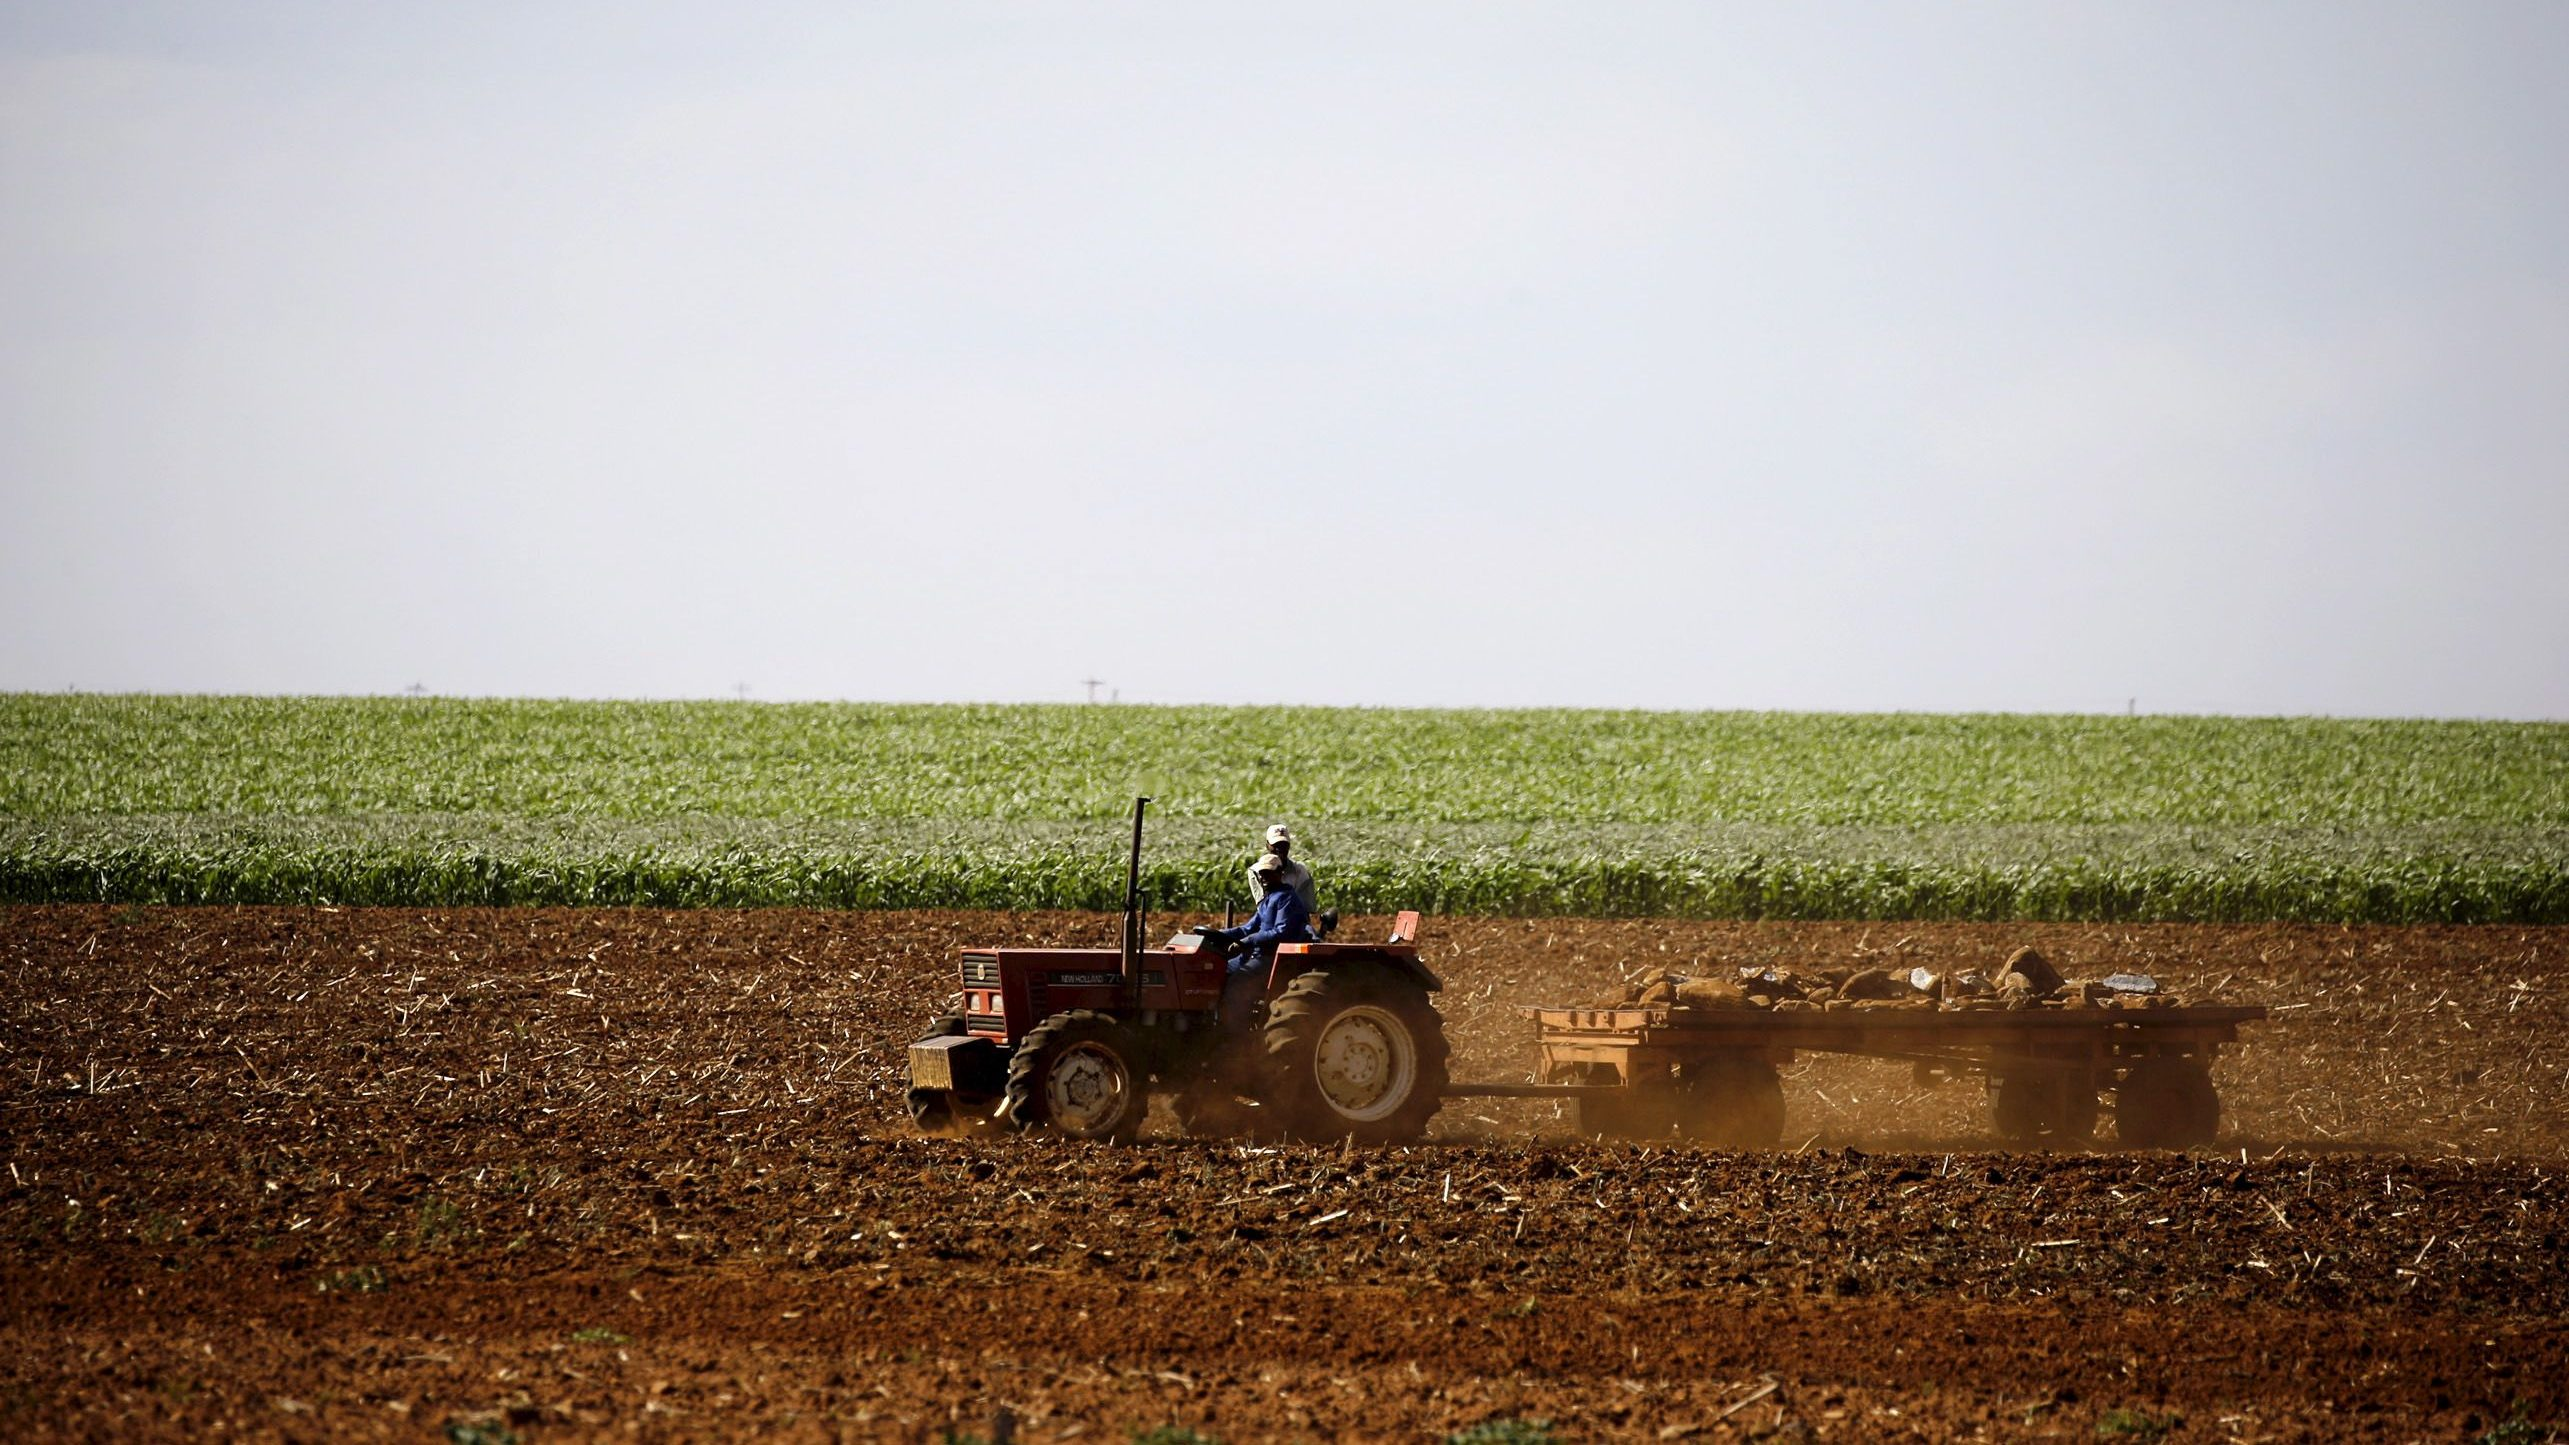 History tells us South Africa's land expropriation debate has no easy solution